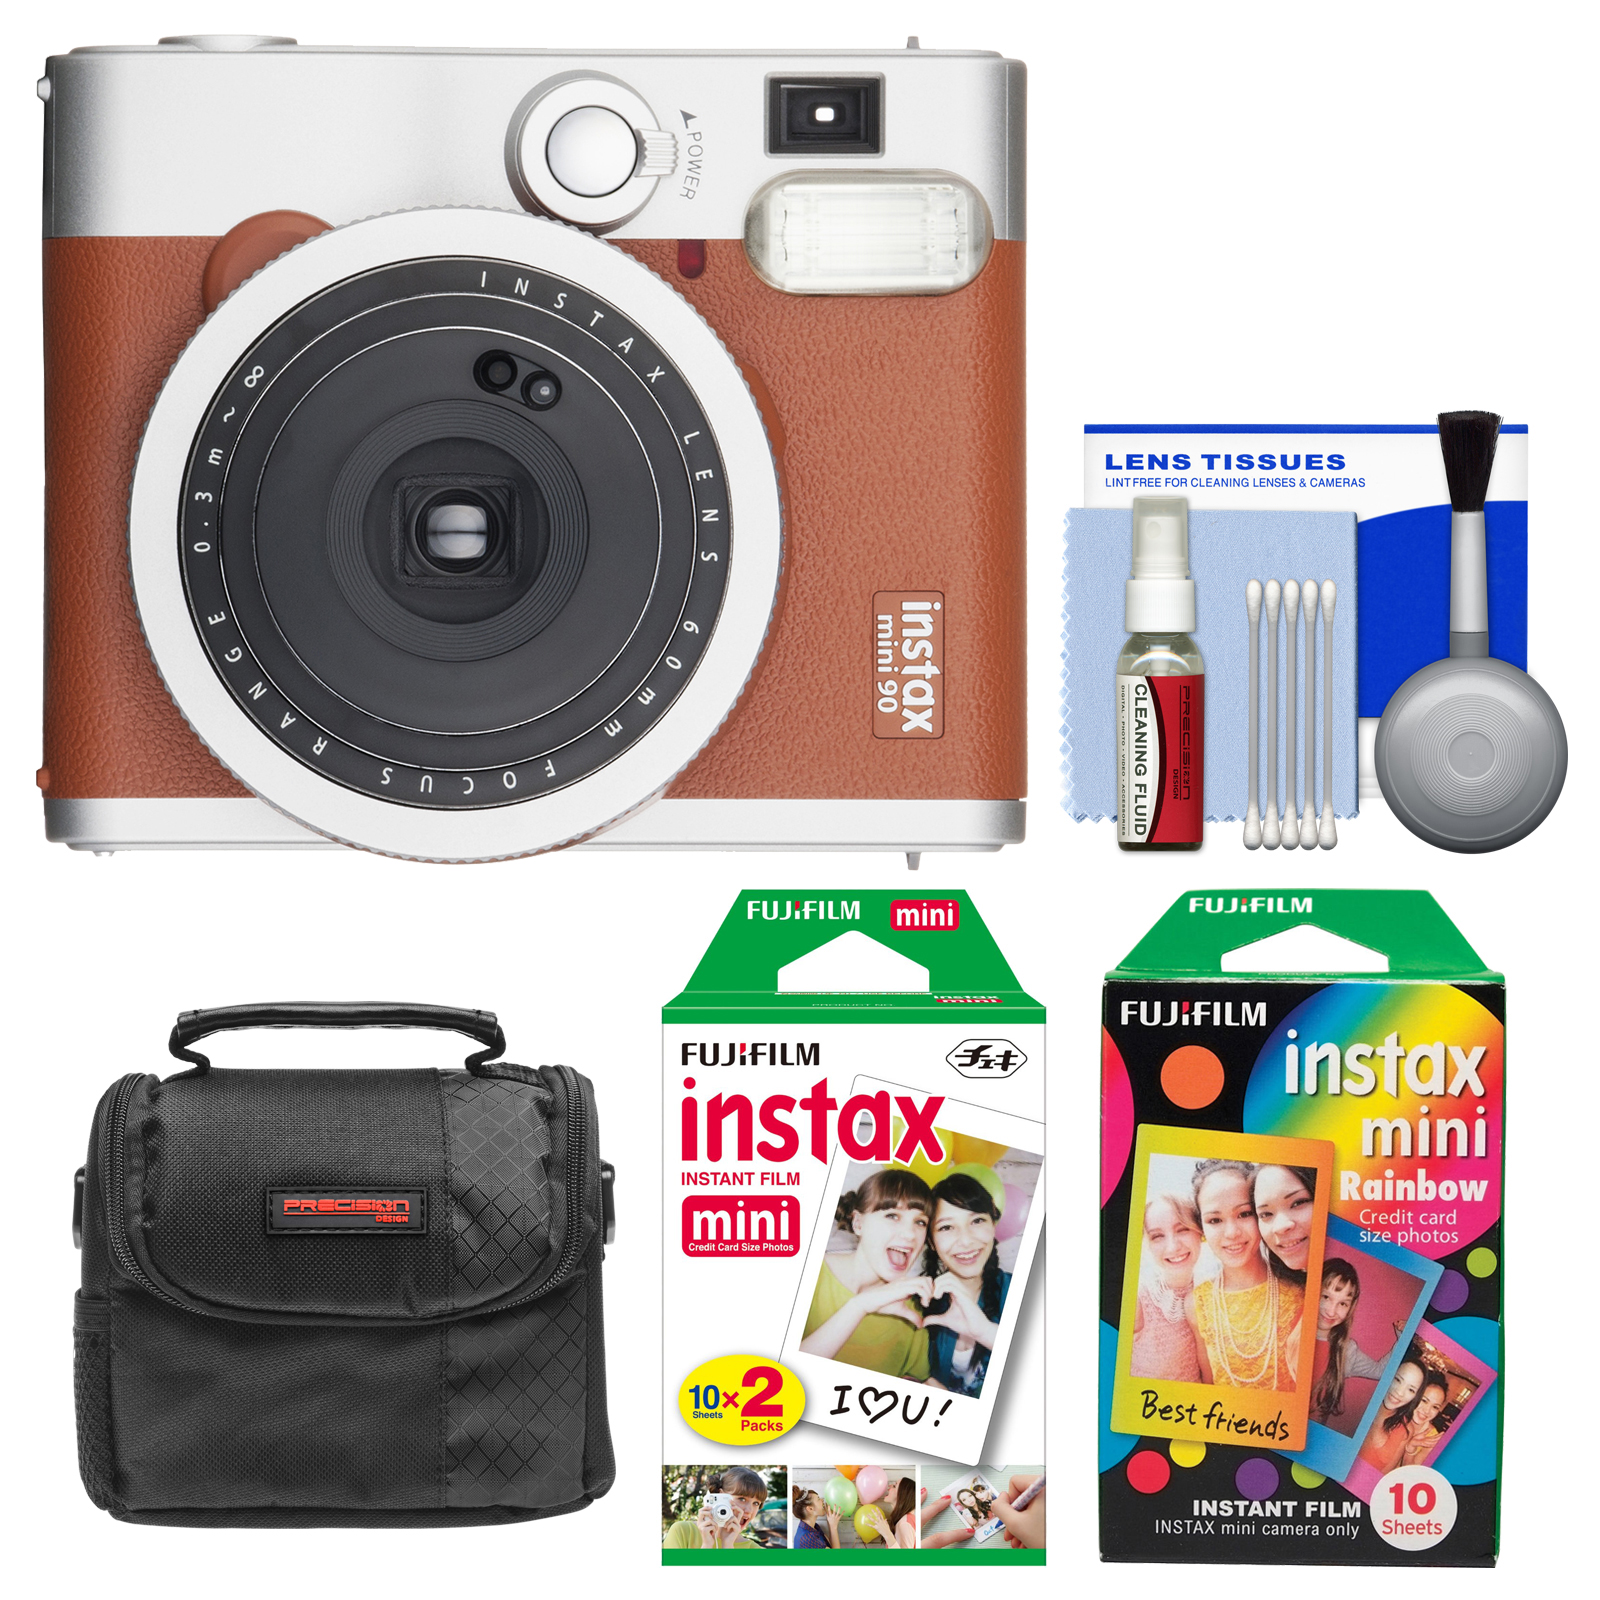 FujiFilm Instax Mini 90 Neo Classic Instant Film Camera (Brown) with Instant & Rainbow Film Packs + Case + Kit by Fujifilm